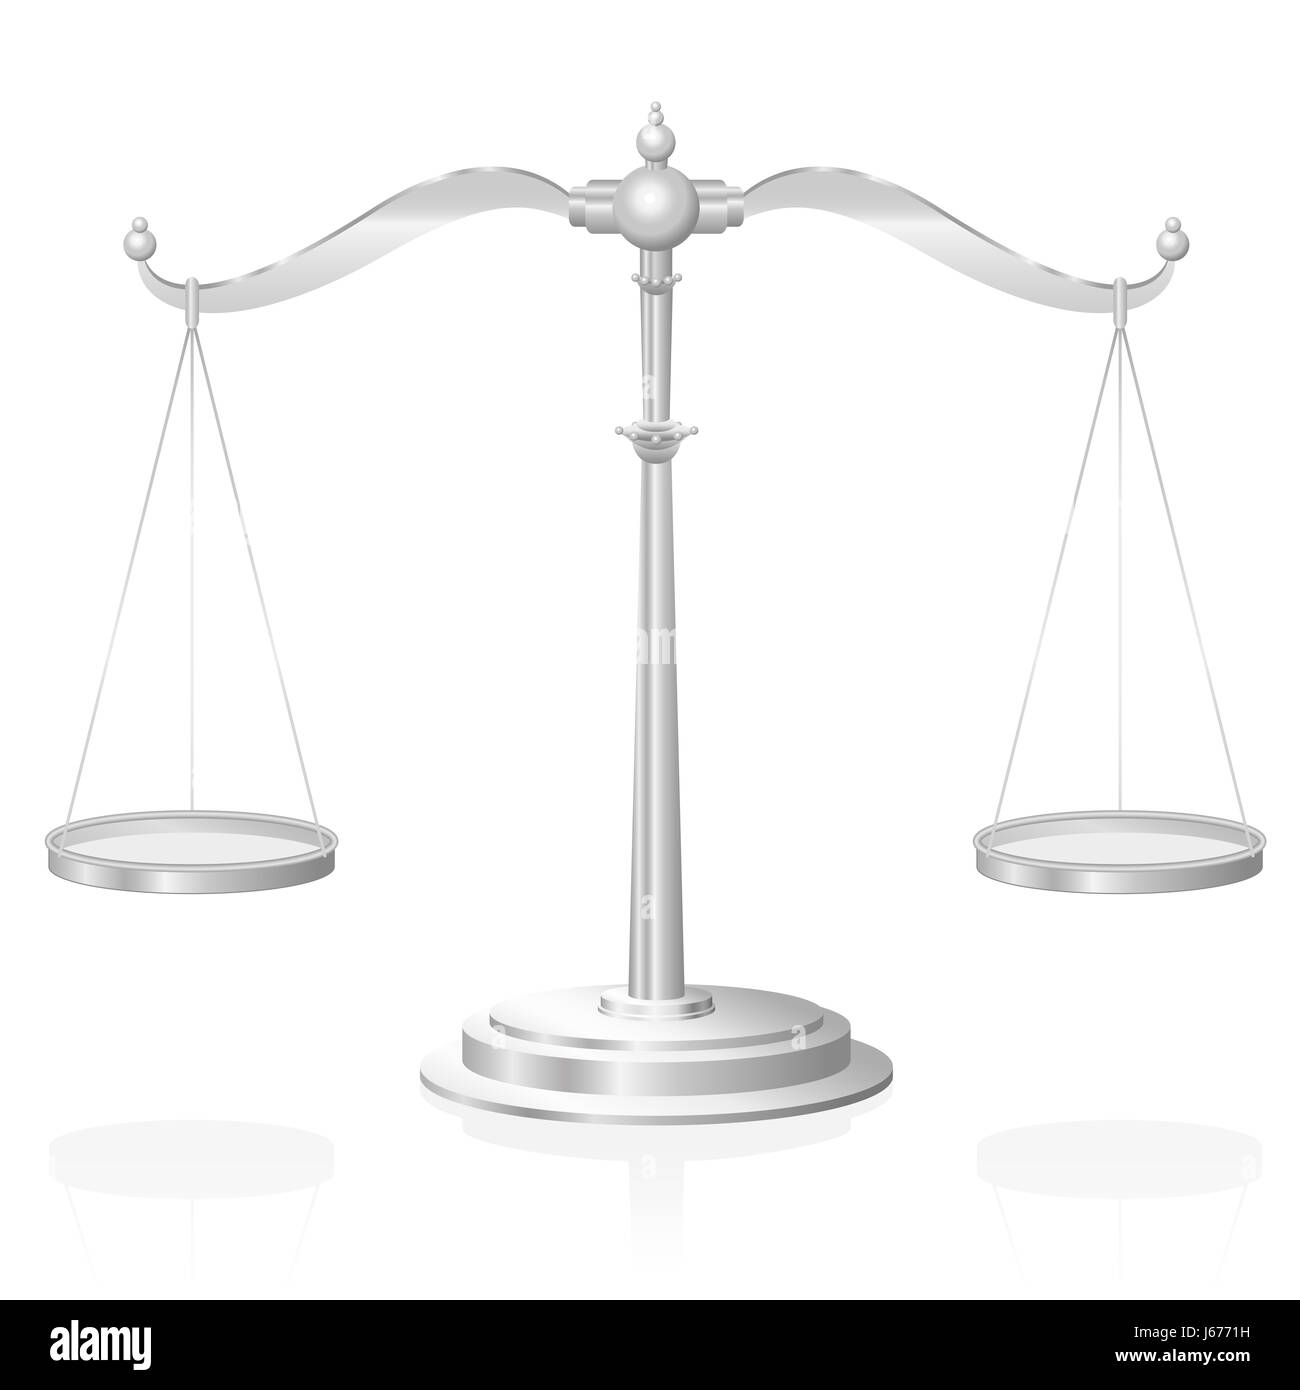 Scale - symbol for justice, jurisdiction, balance and fairness - illustration on white background. - Stock Image